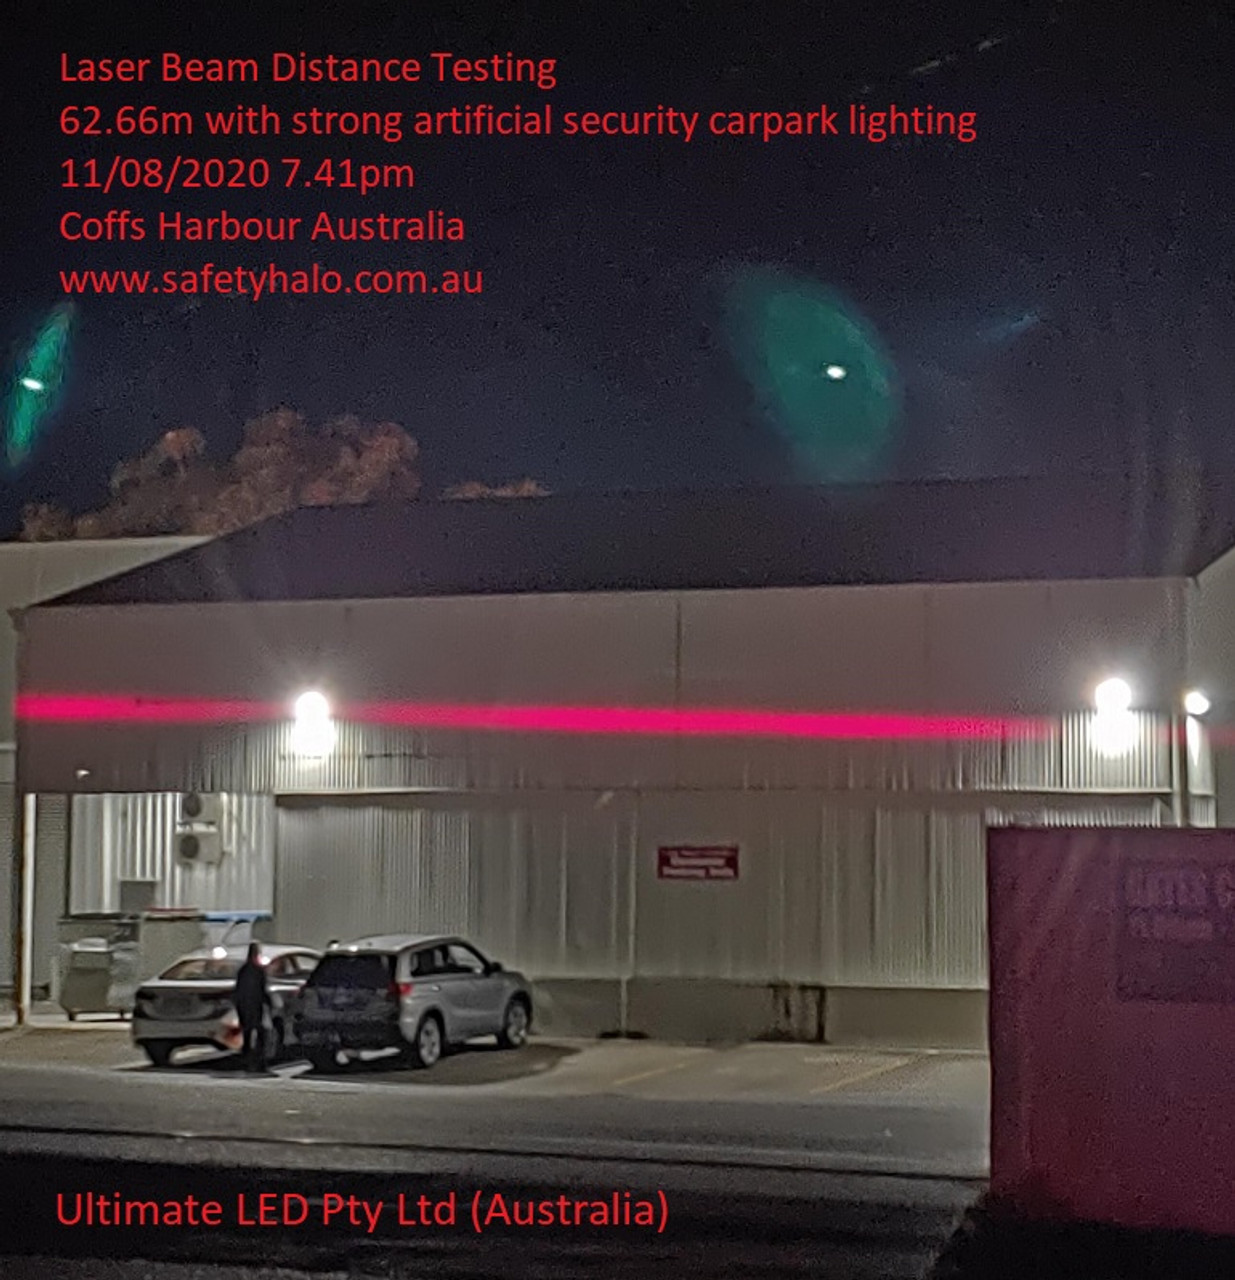 Tested at 62.66m into a well lite secure car park